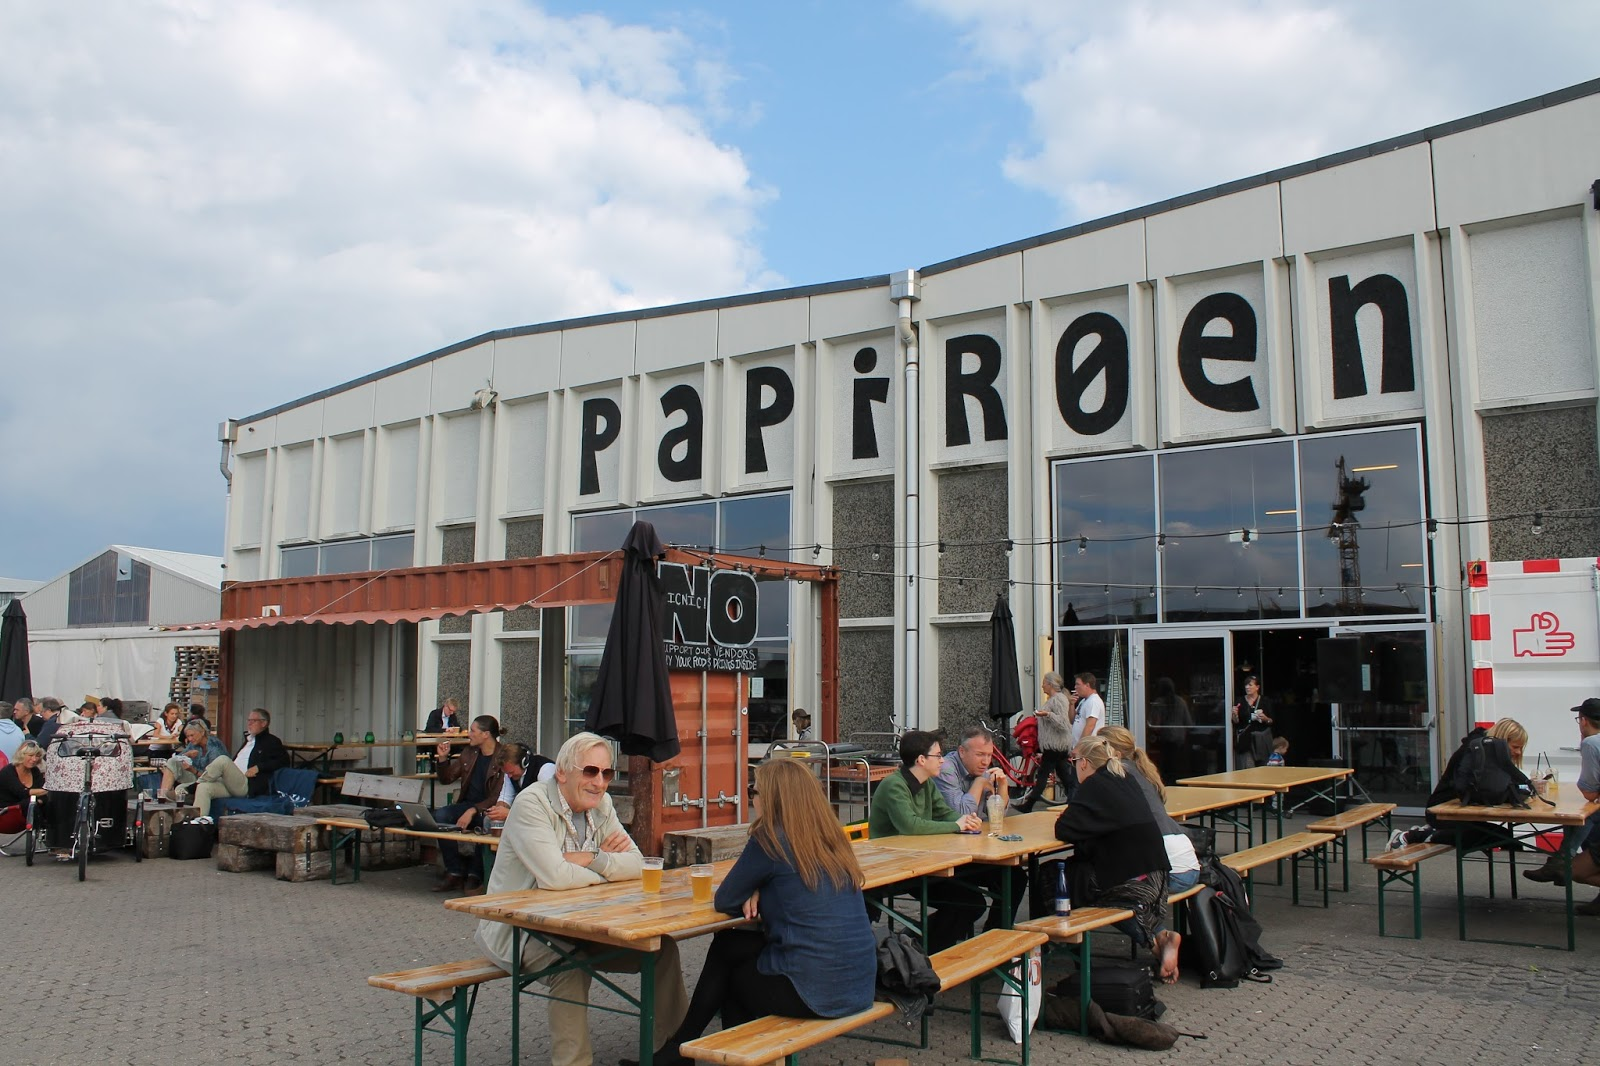 Copenhagen Street Food Paper Island - Travel Post